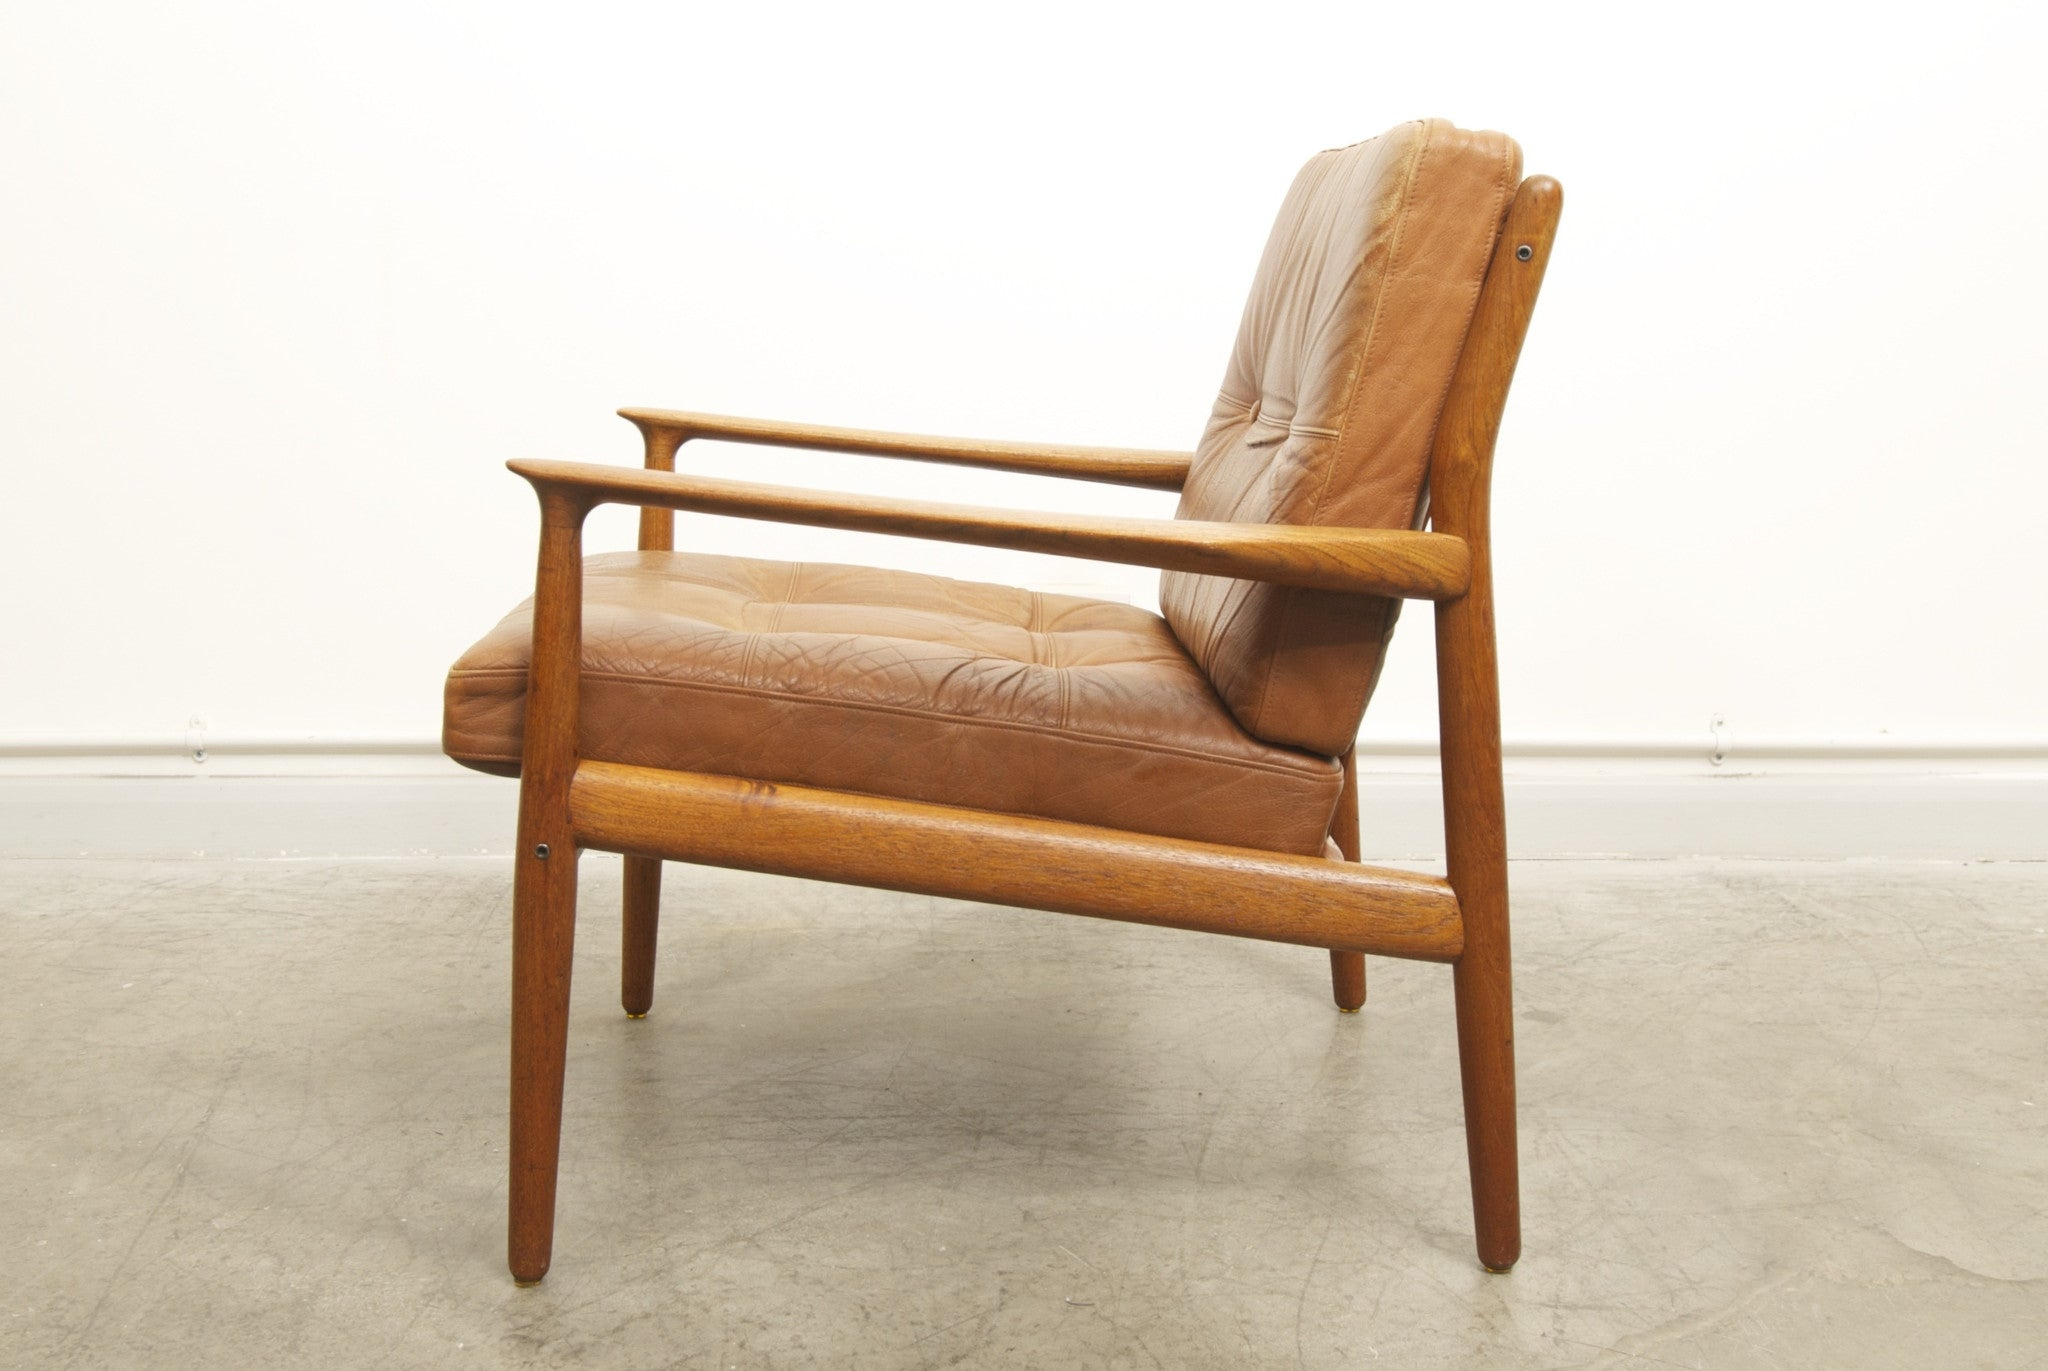 Teak lounger by Grete Jalk